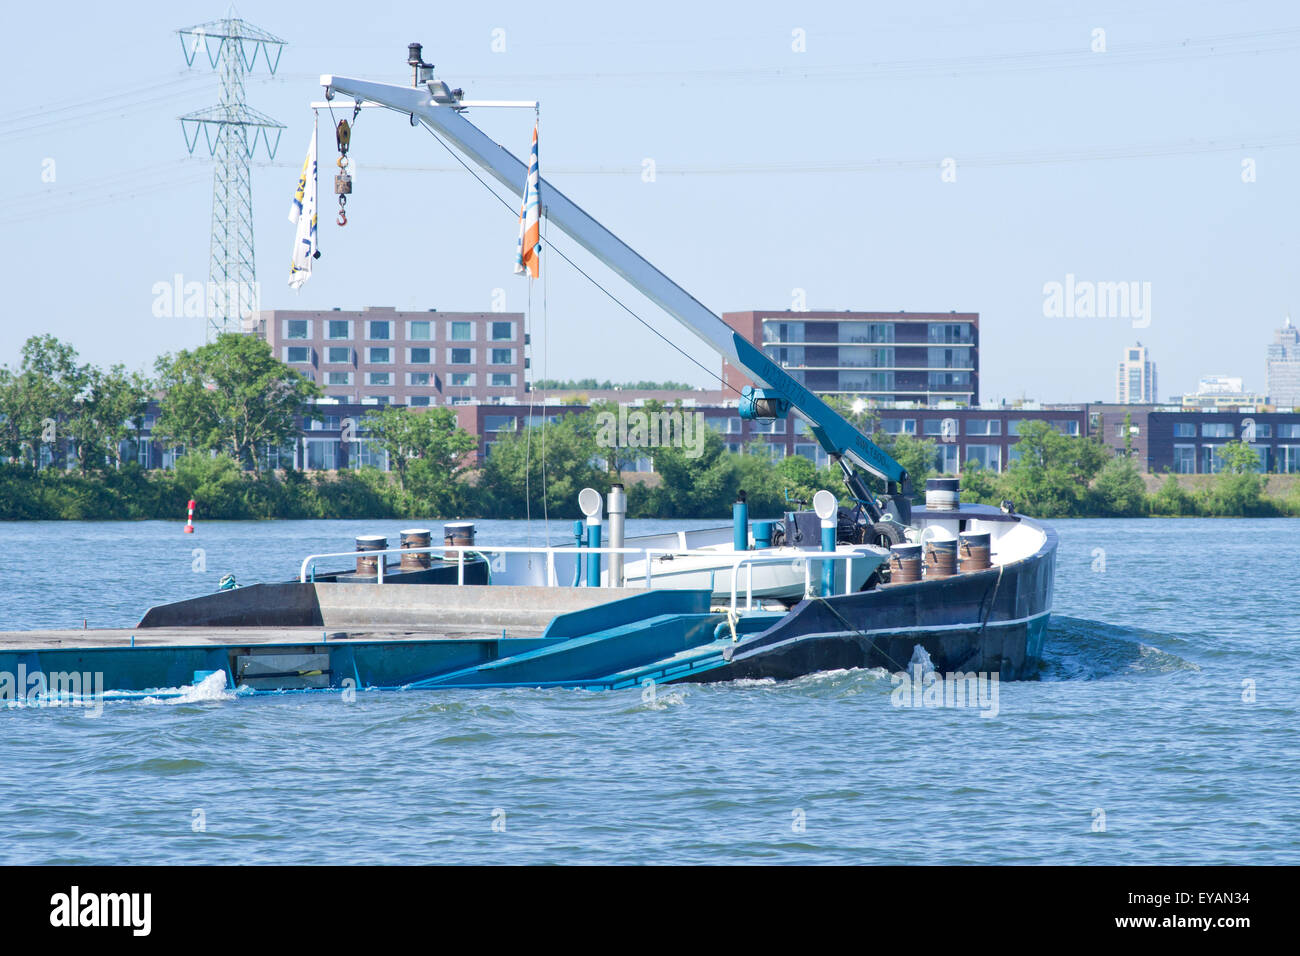 Dutch barge fully laden and low in the water. - Stock Image